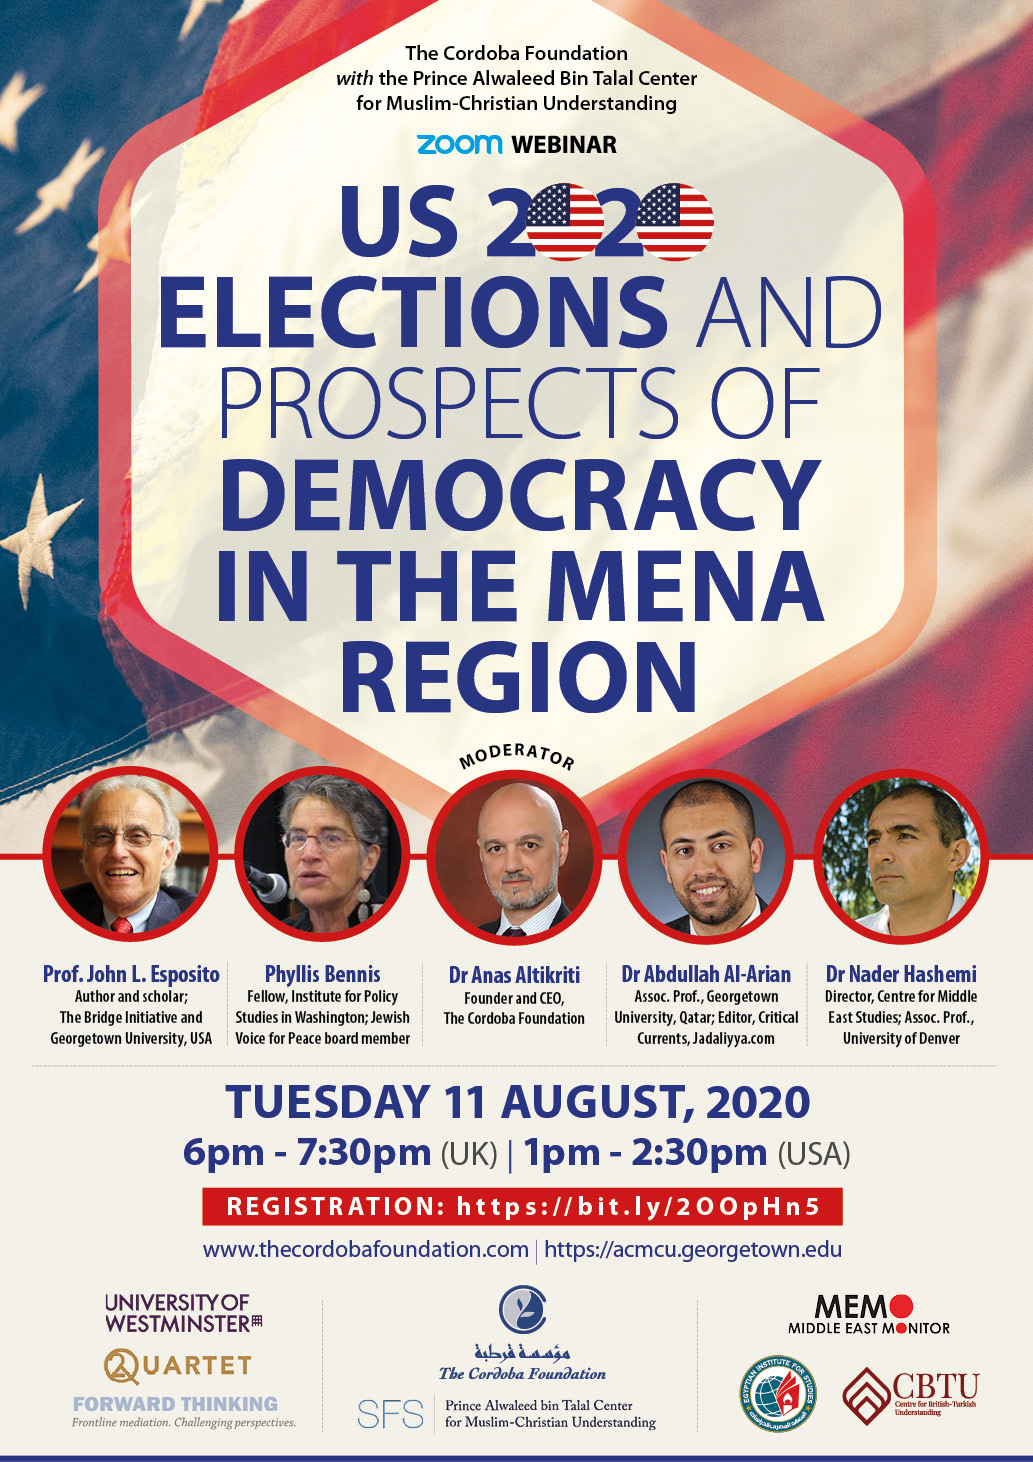 US 2020 ELECTIONS AND PROSPECTS OF DEMOCRACY IN THE MENA REGION